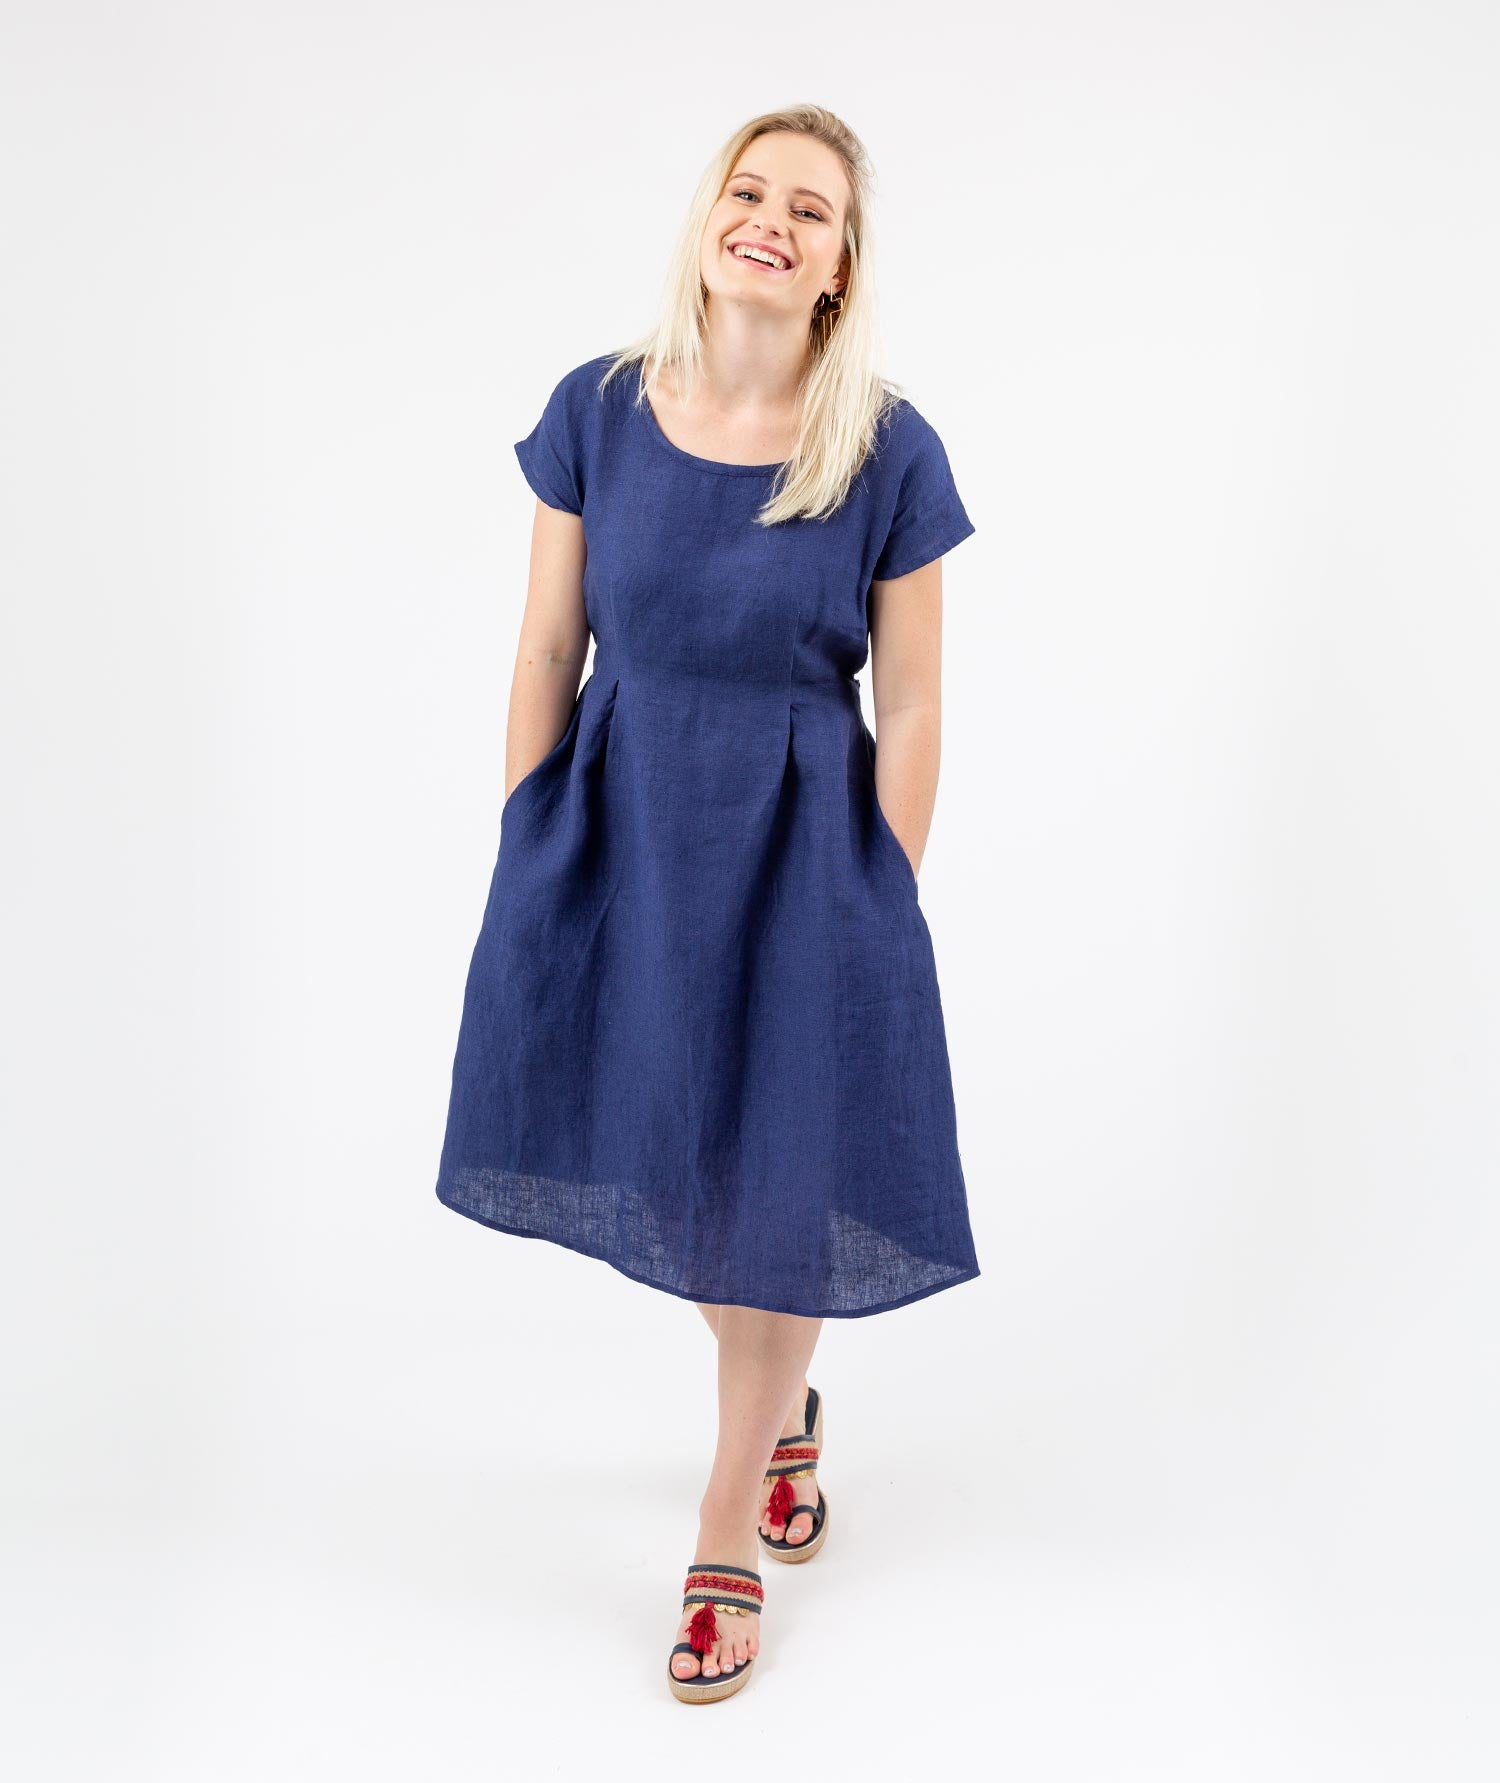 Eastbound Dress by Holi Boli